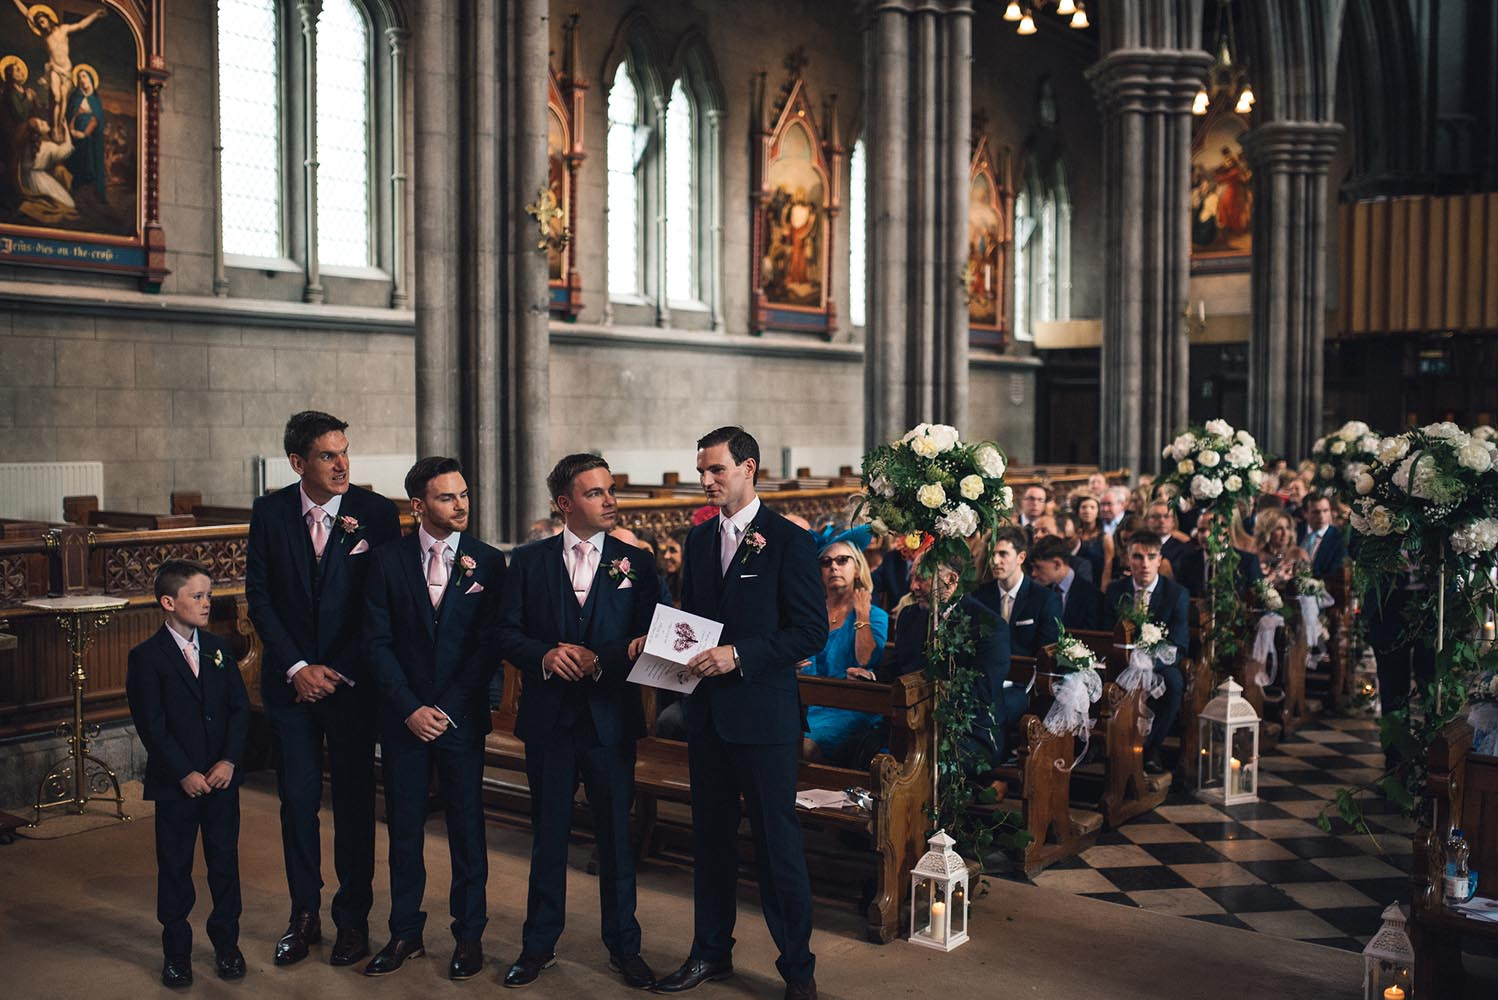 Groom and groomsmen waiting for bride to arrive